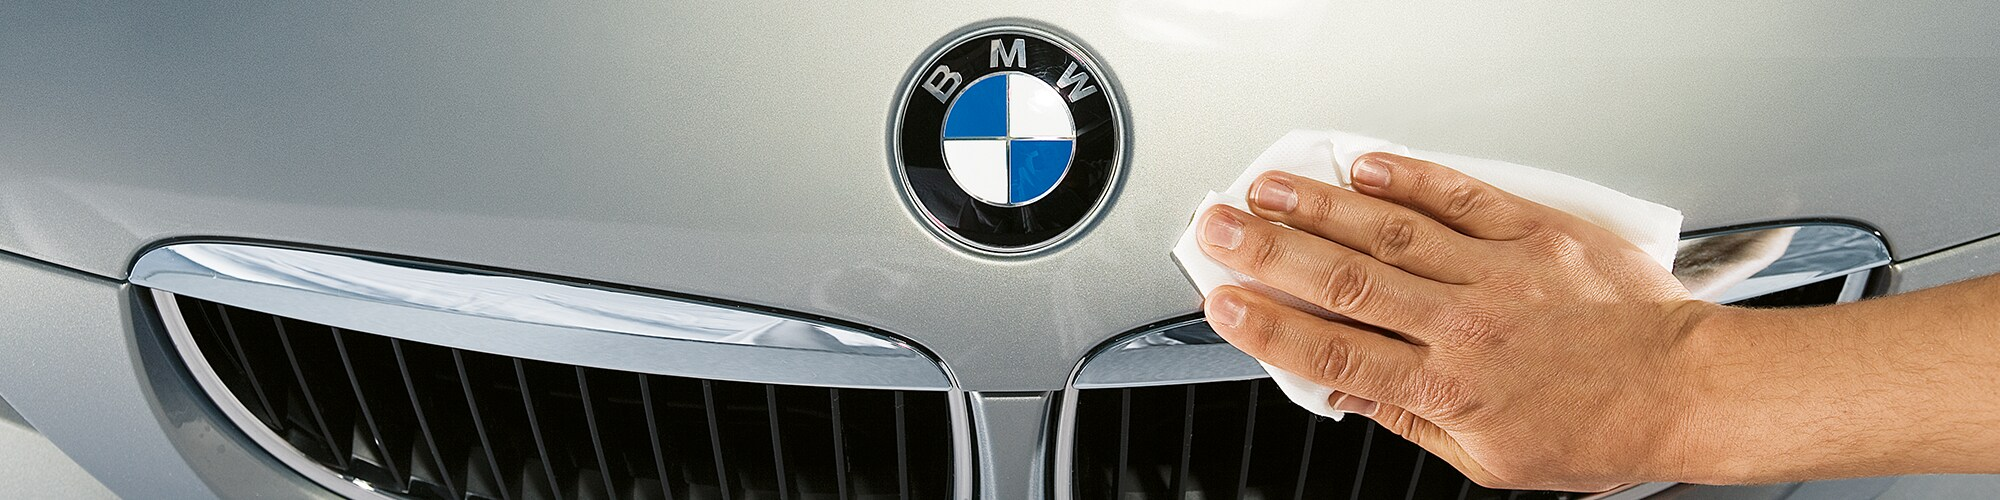 hight resolution of car wash information your local bmw dealer is happy to bring our customers complimentary vehicle washes we will be able to get your vehicle looking like